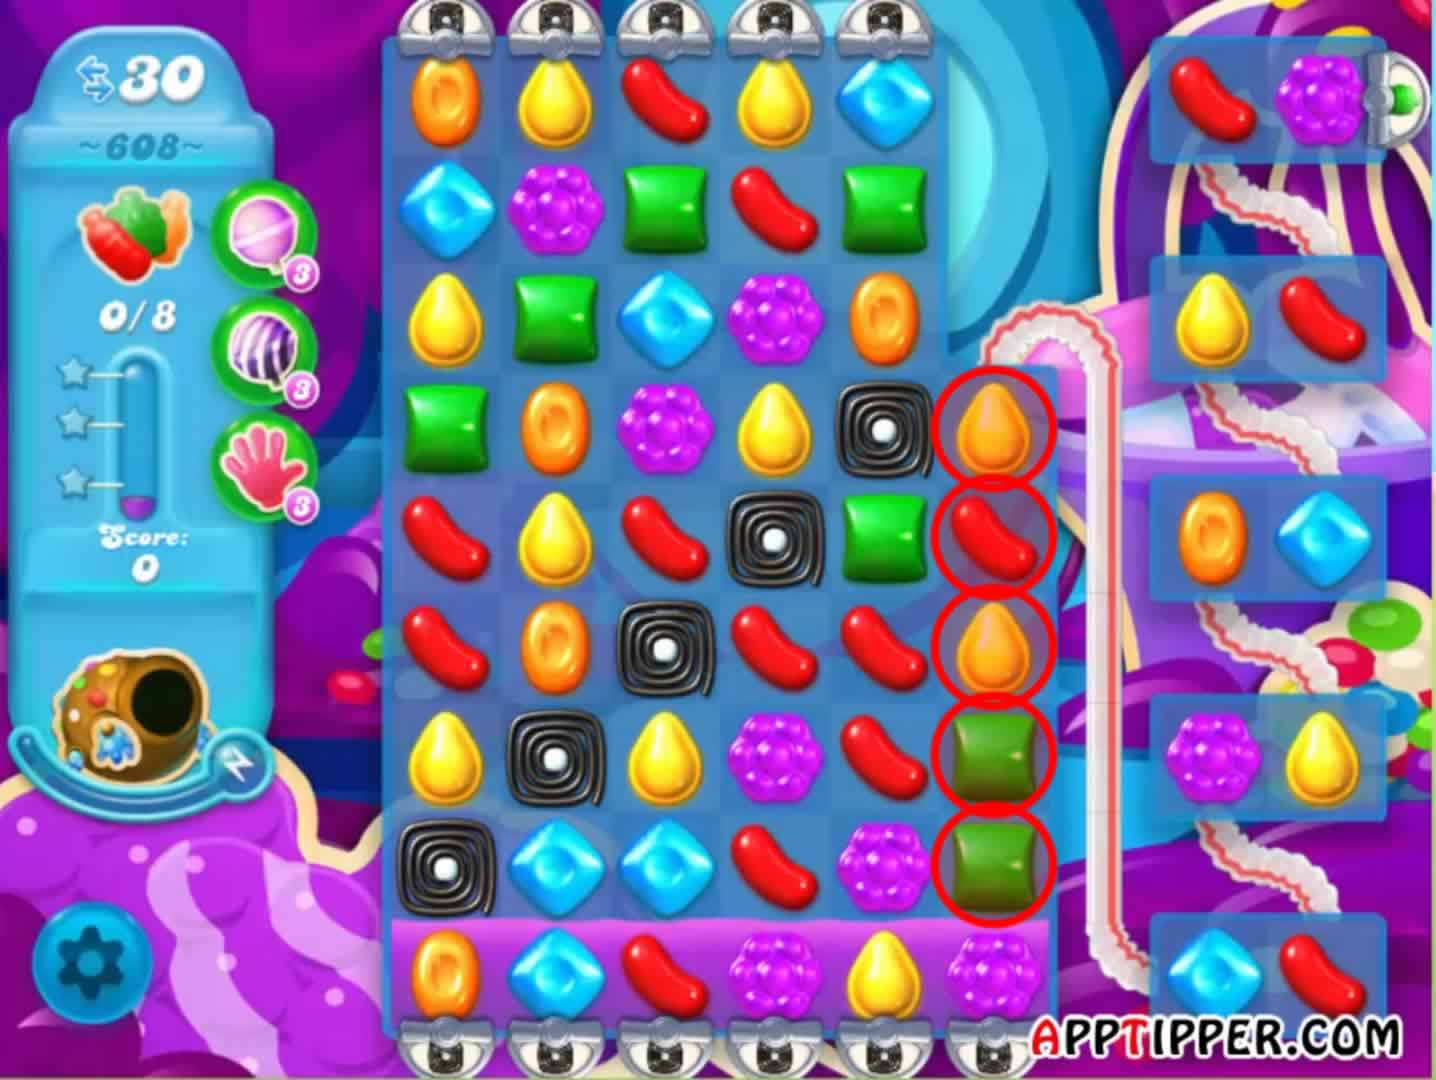 Image currently unavailable. Go to www.generator.cluehack.com and choose Candy Crush Soda Saga image, you will be redirect to Candy Crush Soda Saga Generator site.